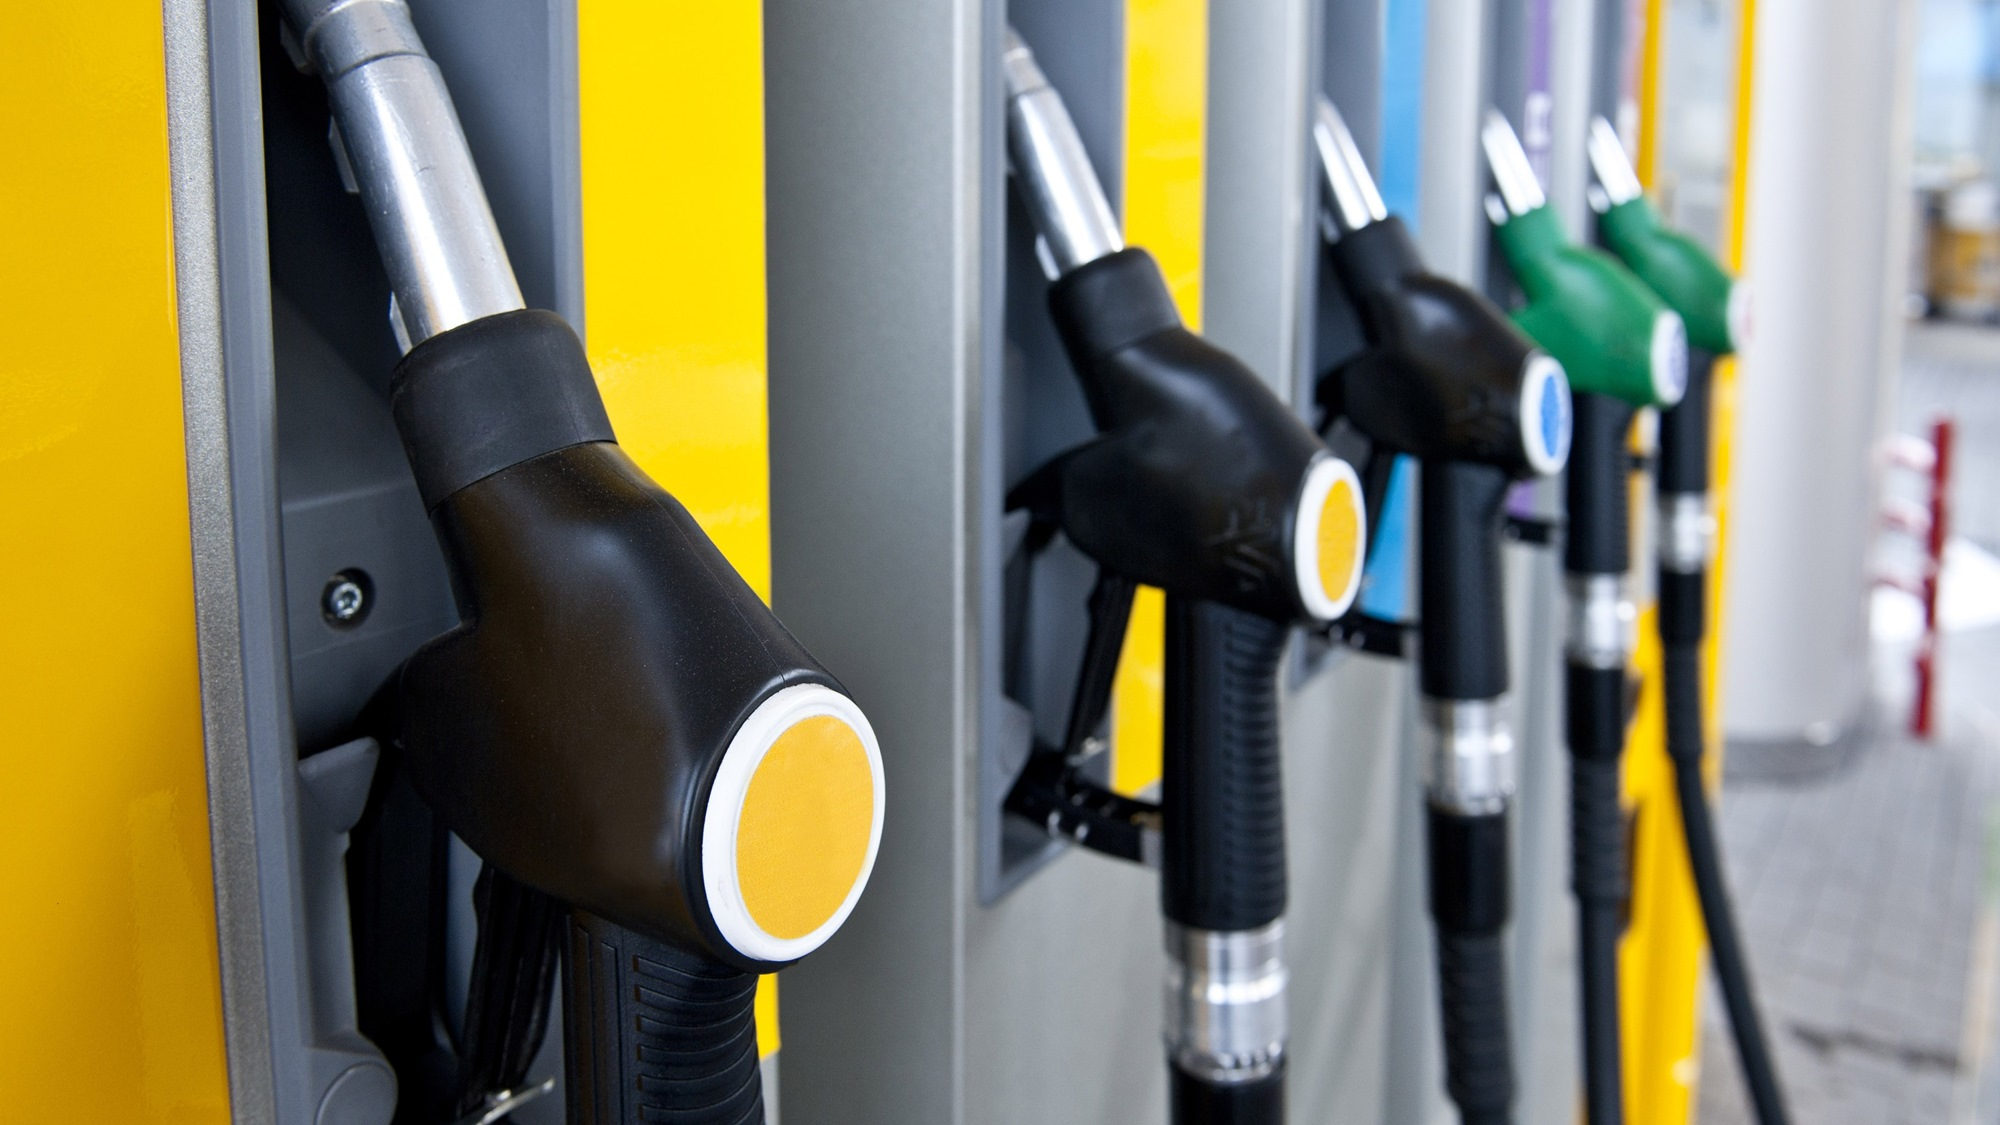 Delhi to get BS VI fuel from April 2018, rest of India 2020